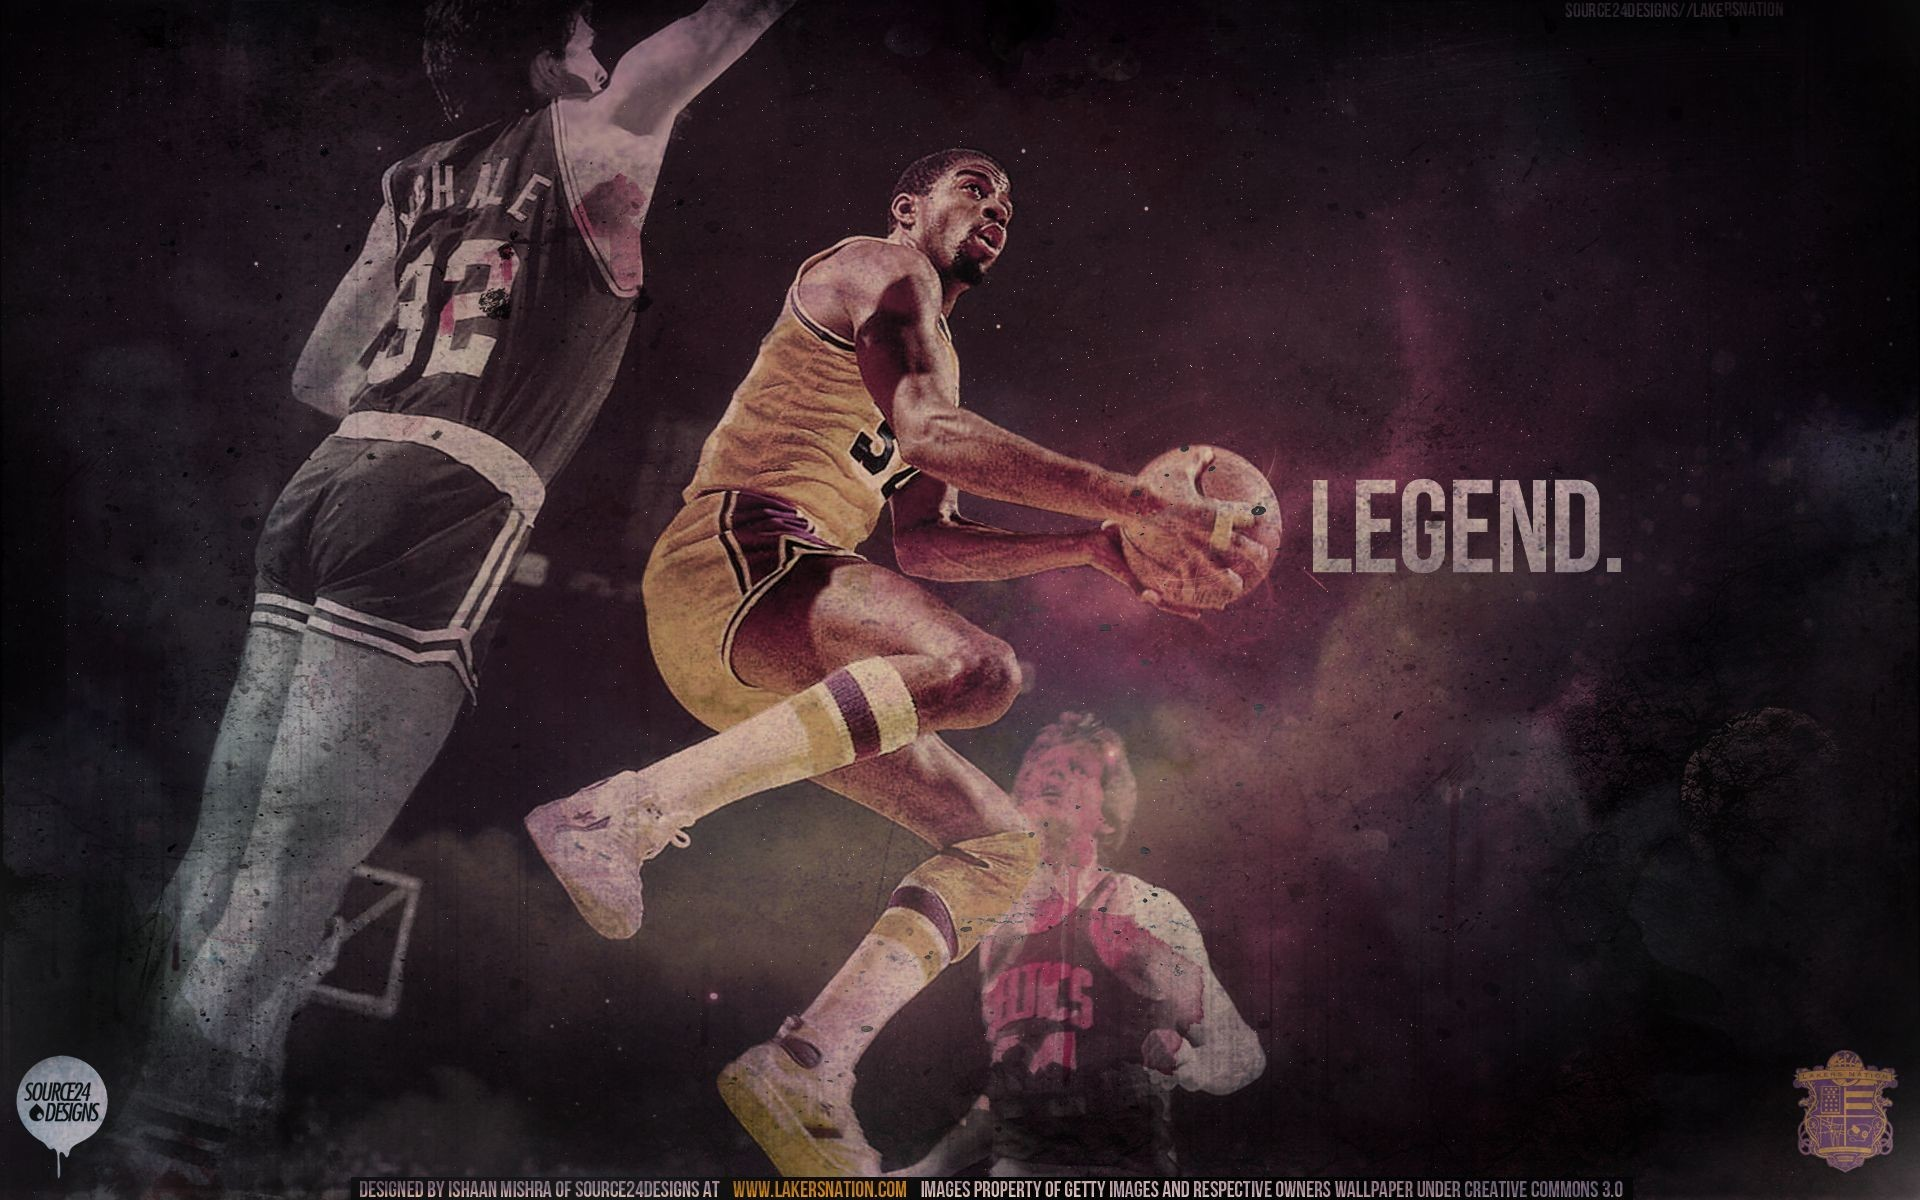 1920x1200  Magic Johnson Legend Wallpaper. Download · 1920x1080 Popular